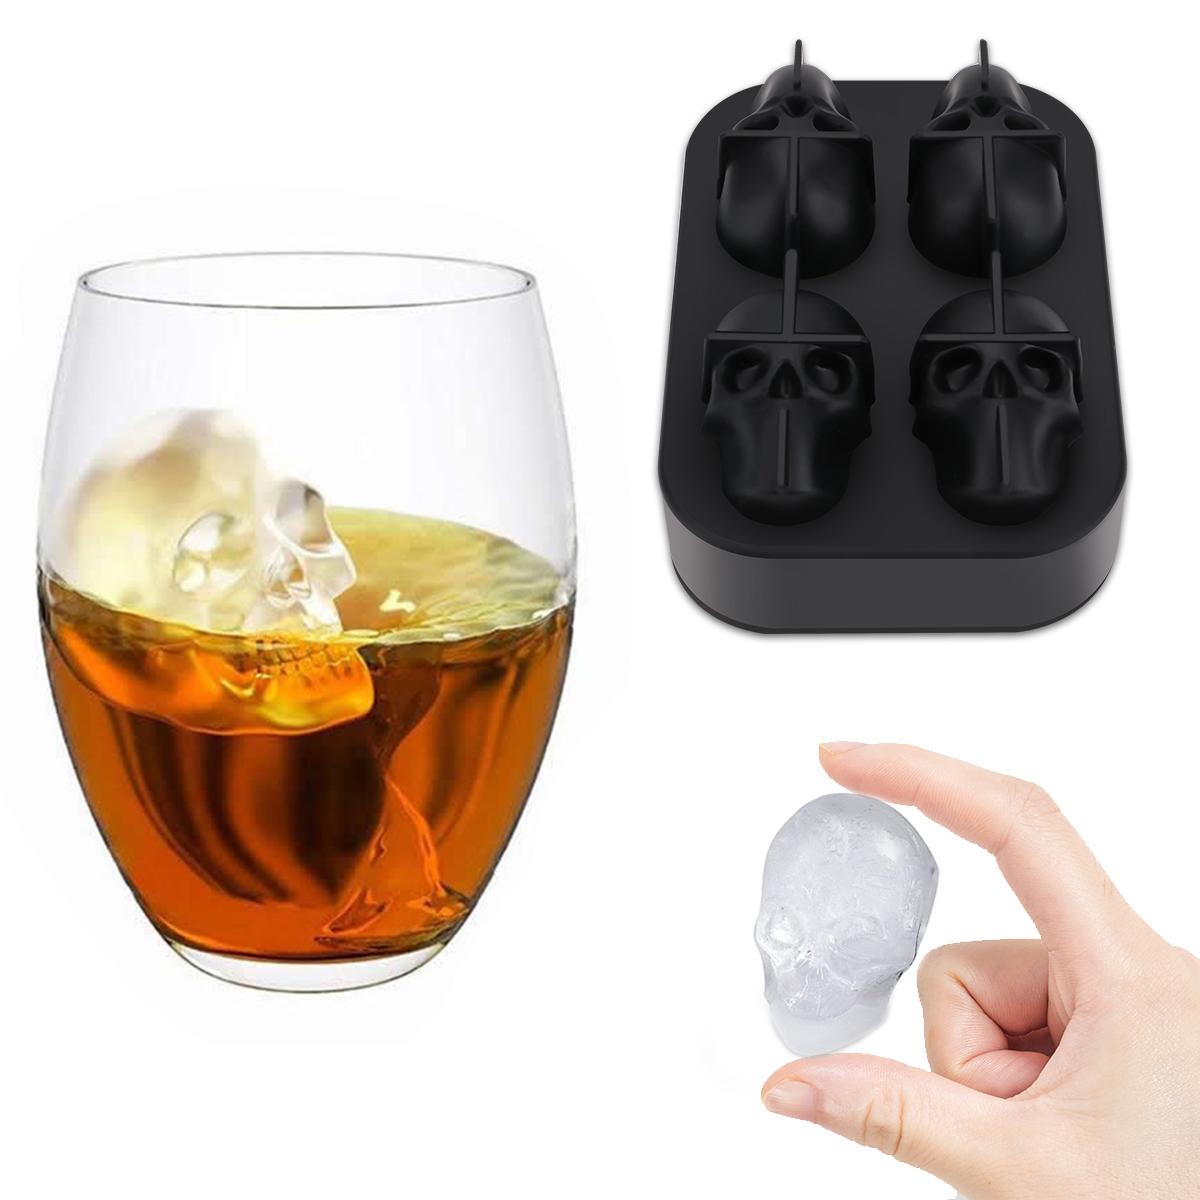 3D Schädel Form <font><b>Ice</b></font> Cube Maker Mold Silikon DIY Bar Party <font><b>Ice</b></font> Cube Tray Mould Kühlen Whisky Cocktail Eis schokolade Werkzeuge image